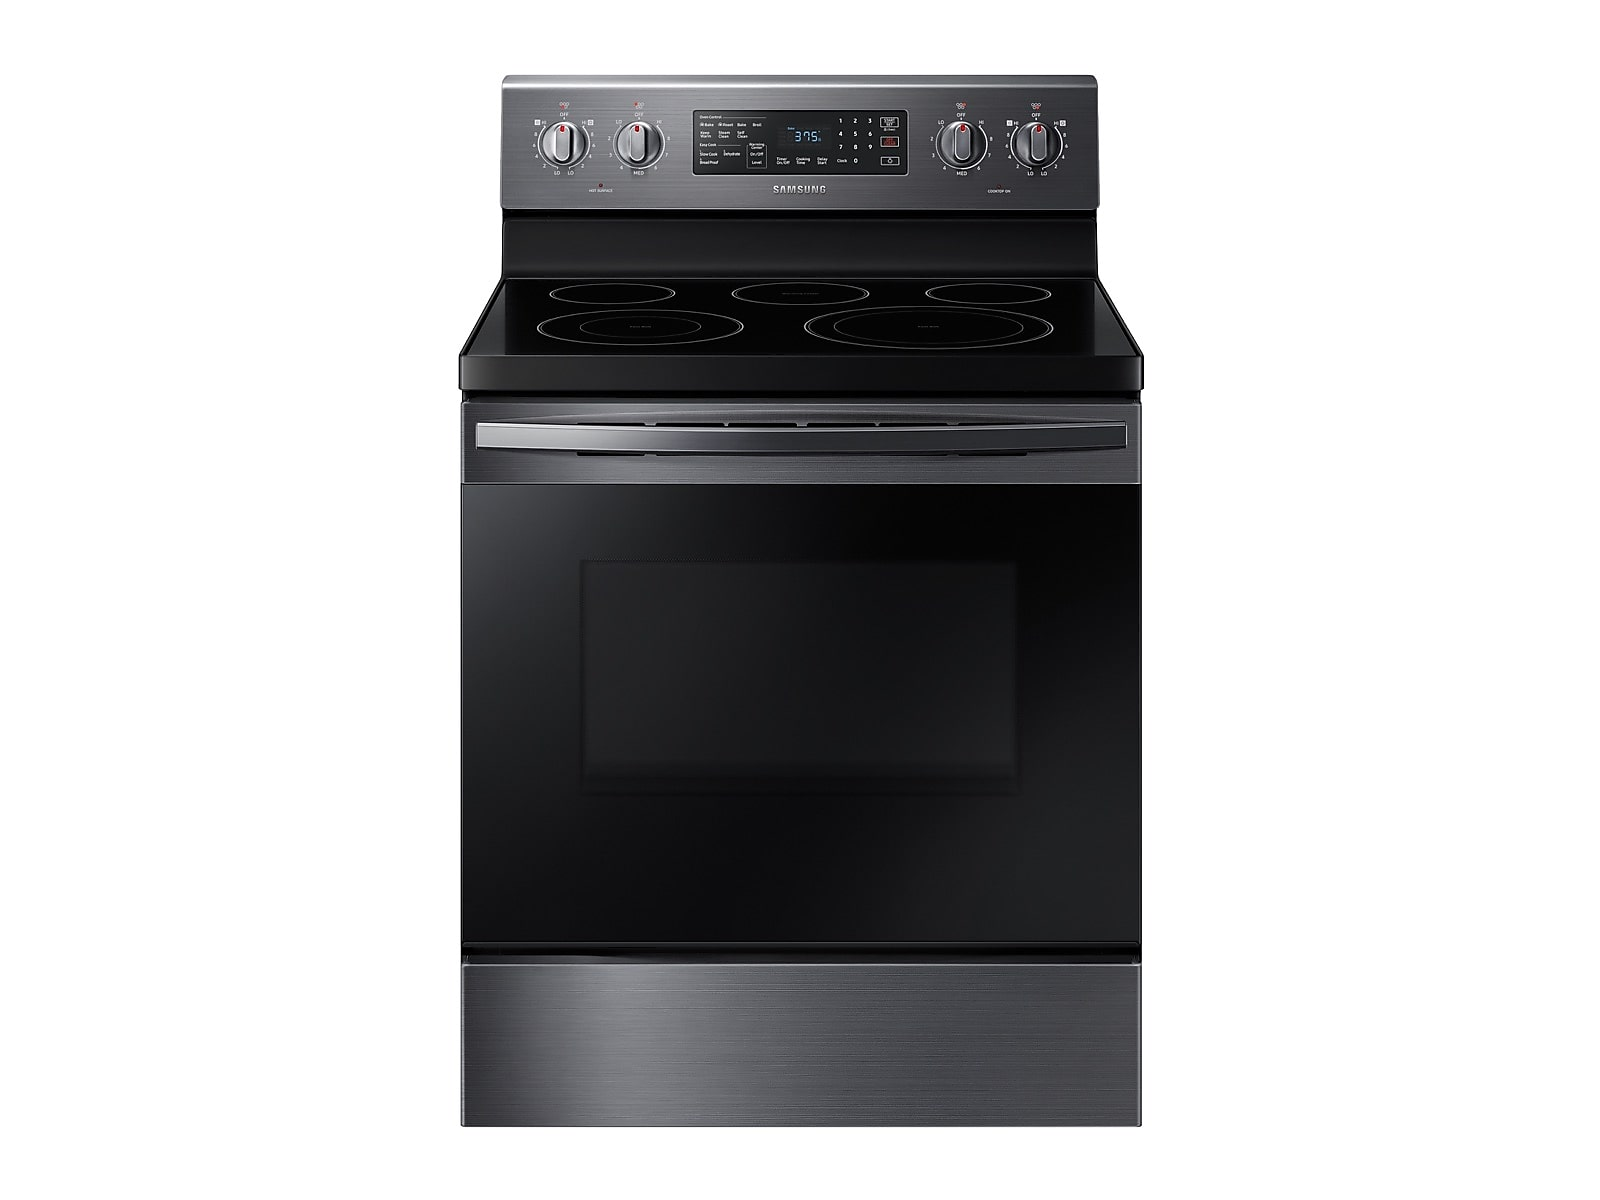 Samsung 5.9 cu. ft. Freestanding Electric Range with Convection in Black Stainless Steel(NE59R4321SG/AA)